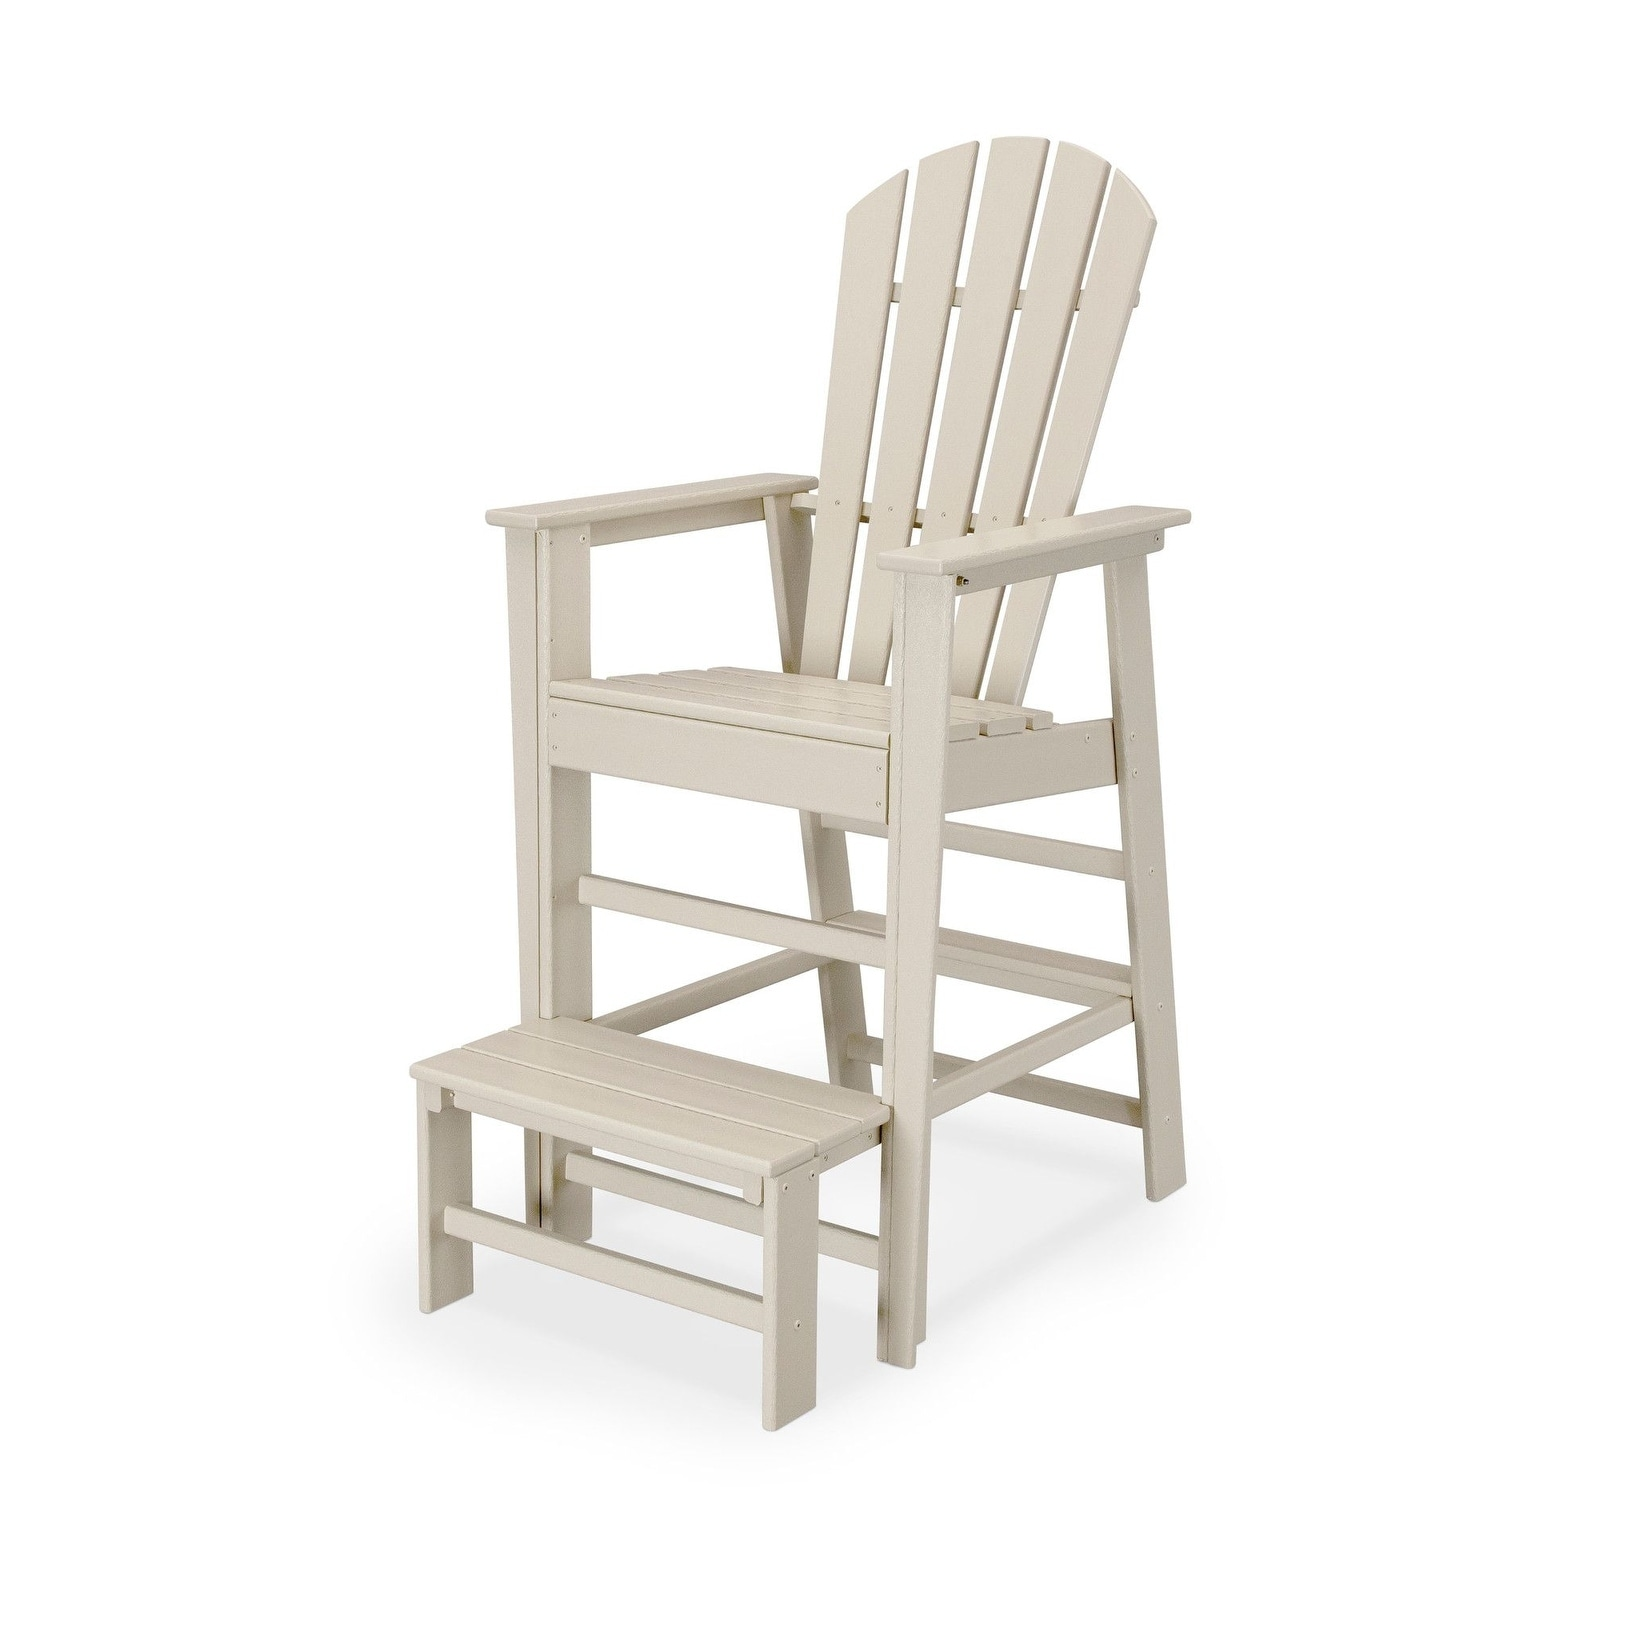 0354d4039141 Shop POLYWOOD South Beach Outdoor Lifeguard Chair with Extended Foot Step -  Free Shipping Today - Overstock - 13806903